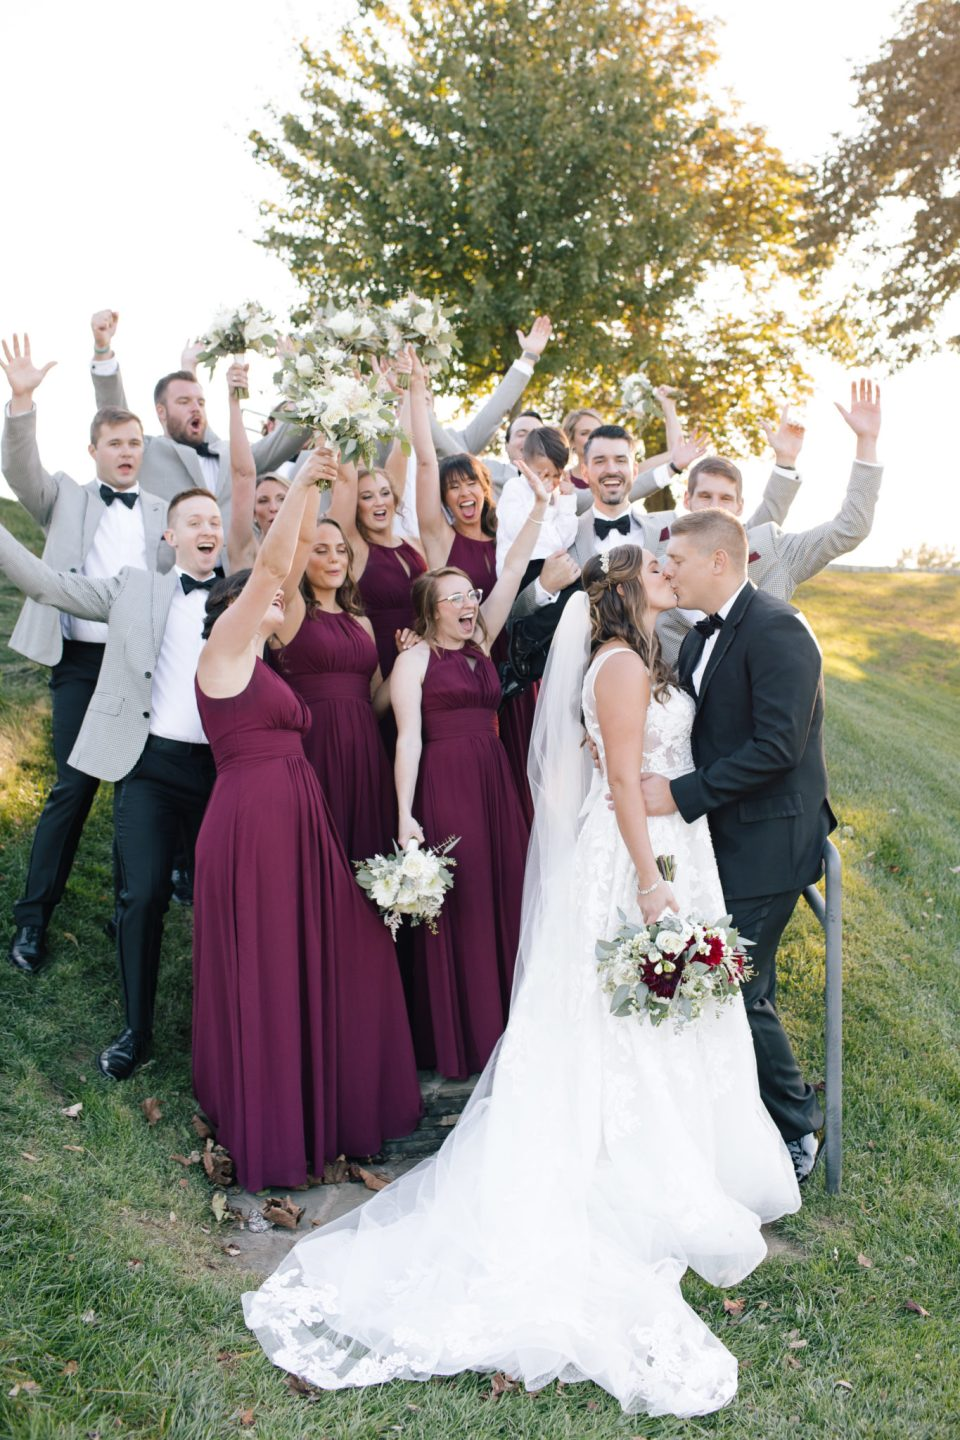 wedding party in burgundy and black photographed by Ashley Mac Photographs